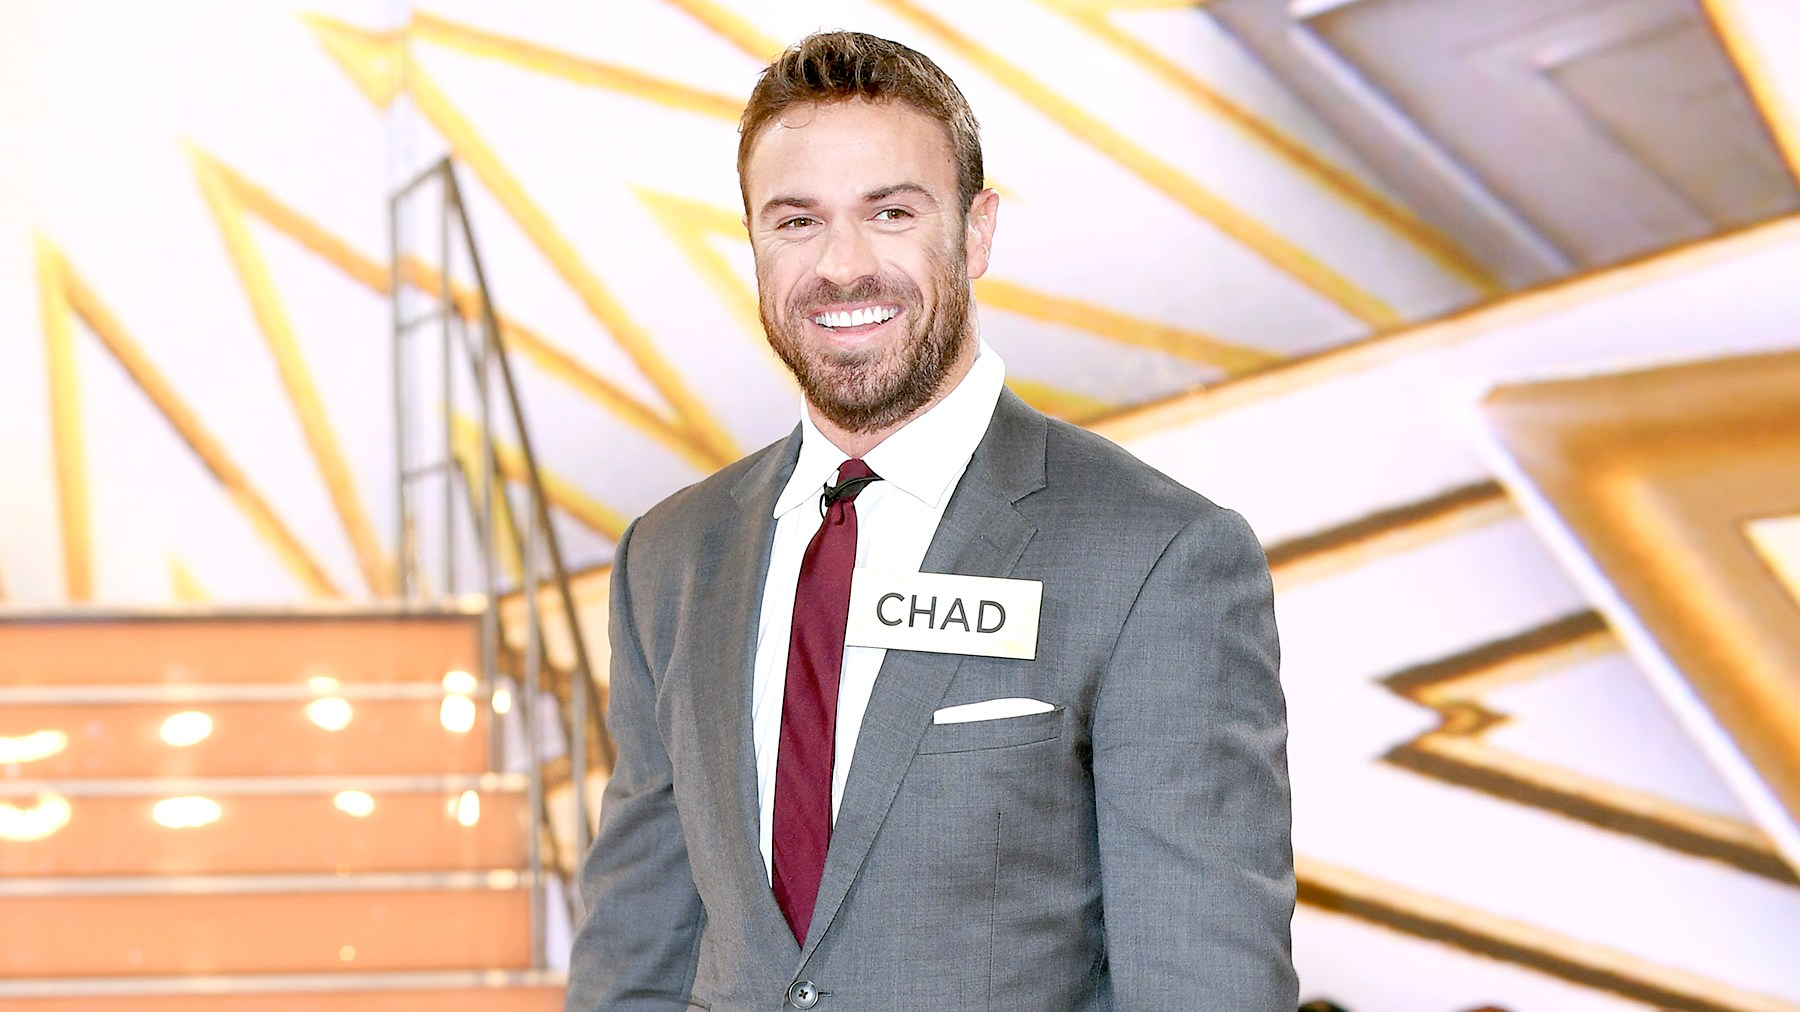 Chad Johnson enters the 'Big Brother' house for the 'Celebrity Big Brother' launch at Elstree Studios in Borehamwood, England on August 1, 2017.